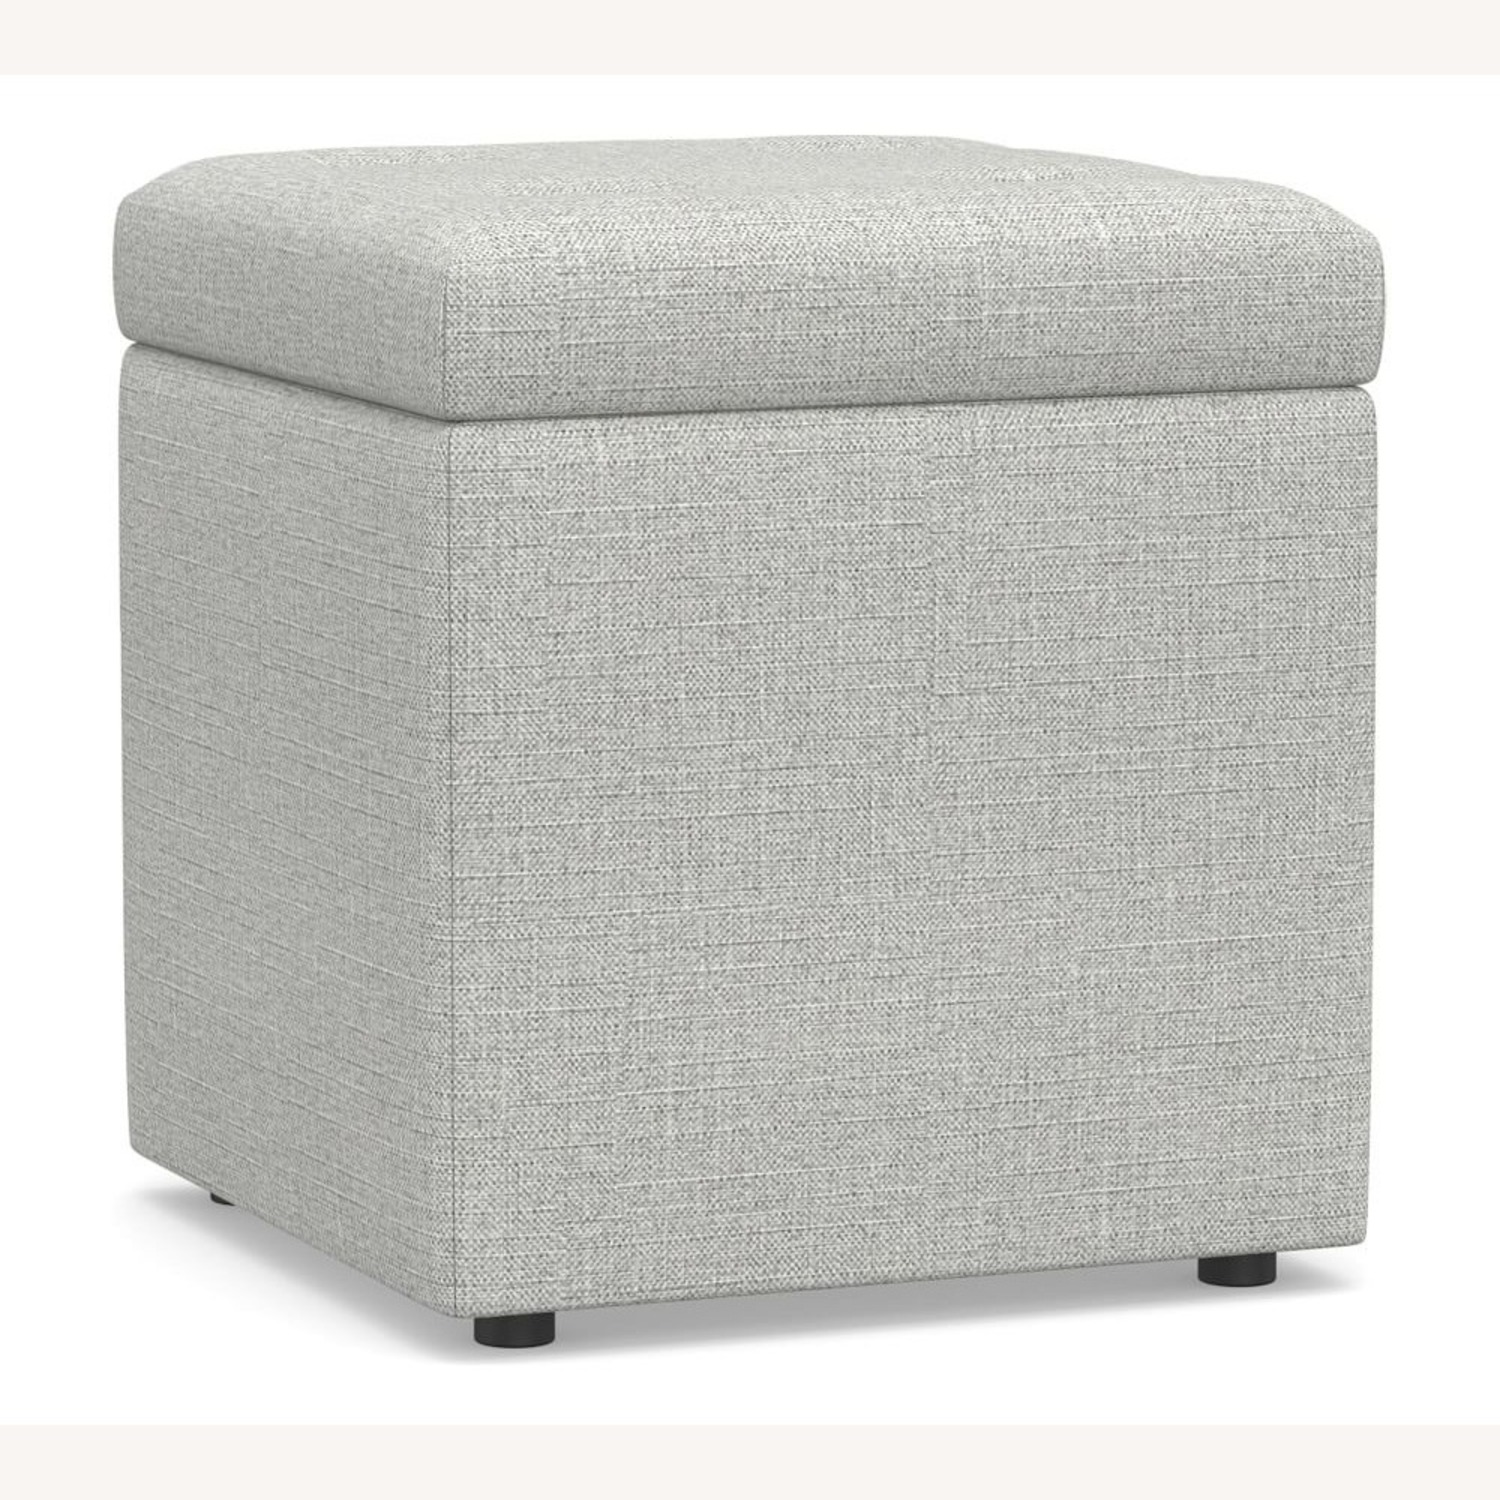 Pottery Barn Marlow Upholstered Storage Cube - image-3